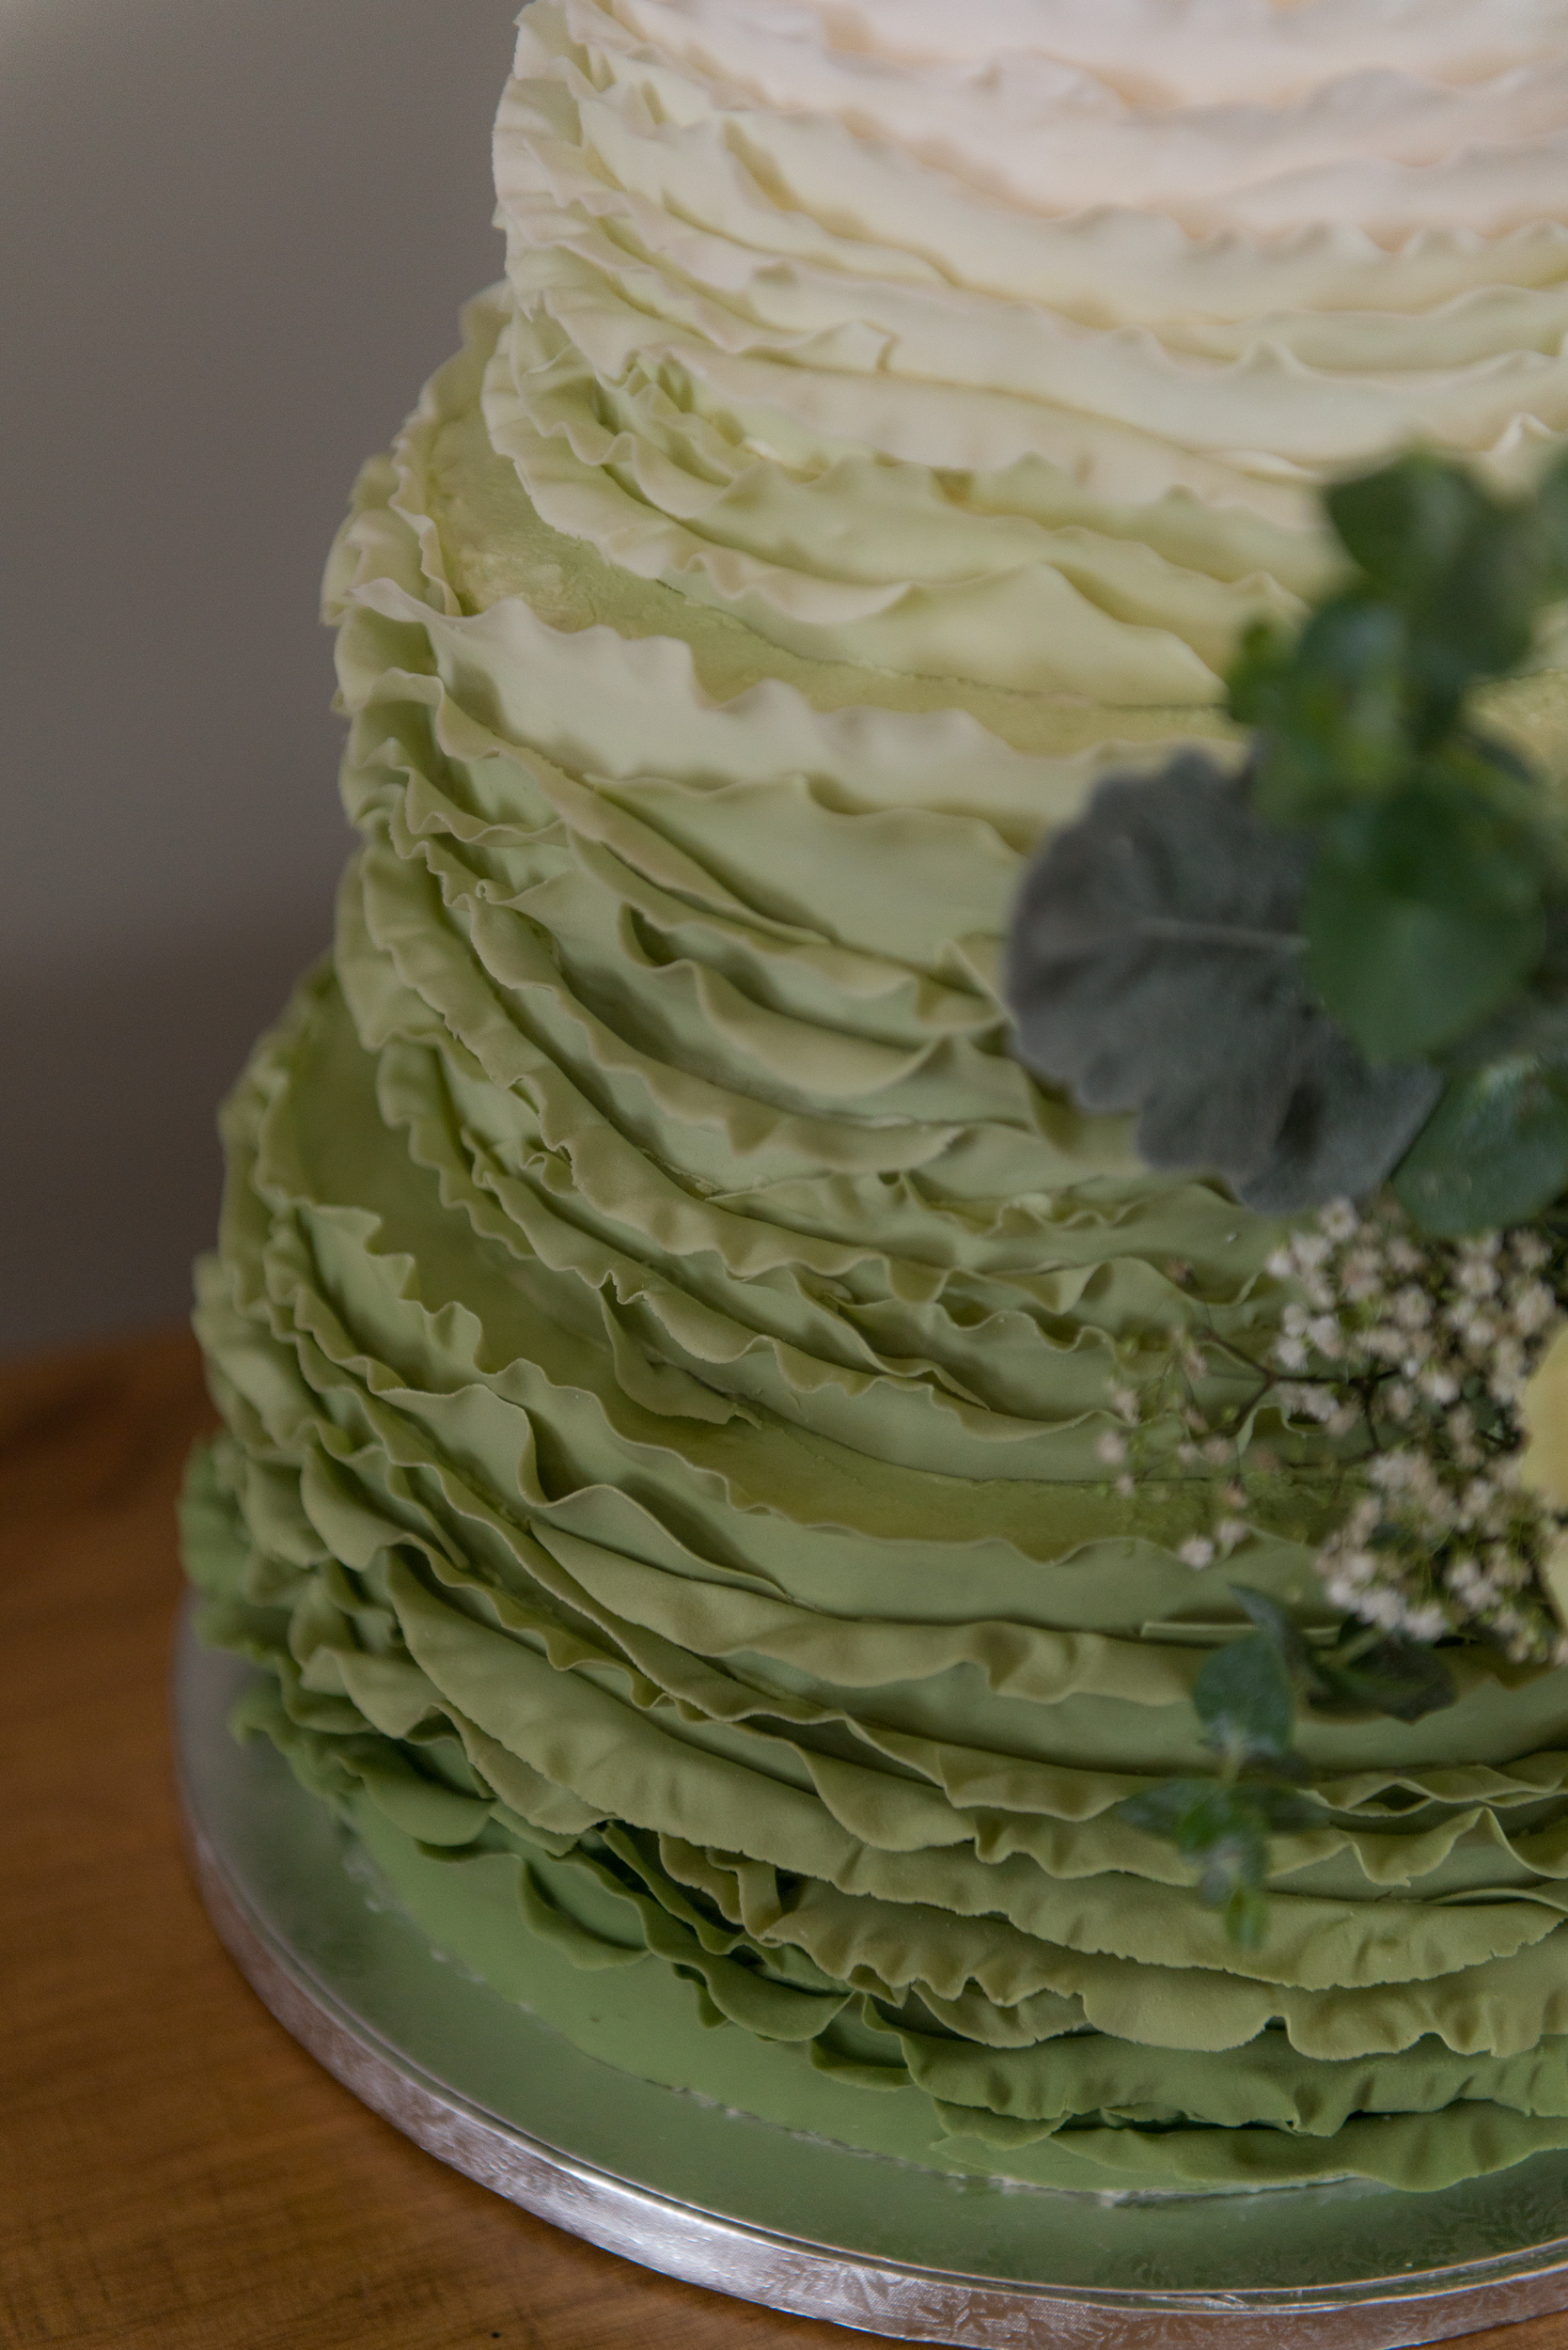 A wedding cake with green ruffle icing at a reception at Blue Valley Vineyard and Winery in Delaplane, Virginia